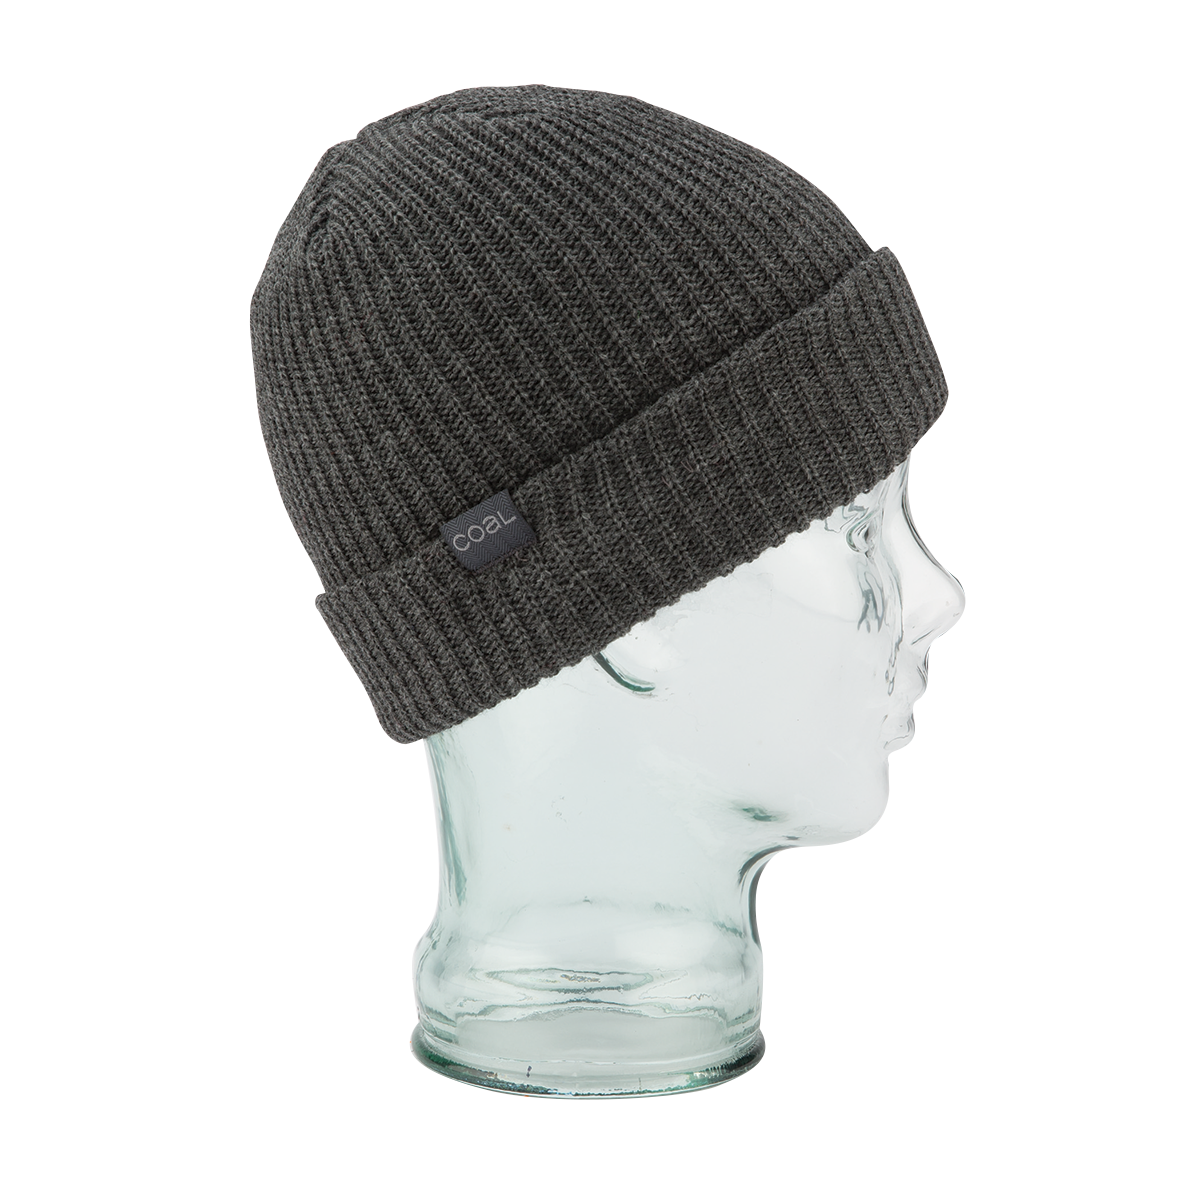 Coal Stanley Cuffed Knit Beanie Hat